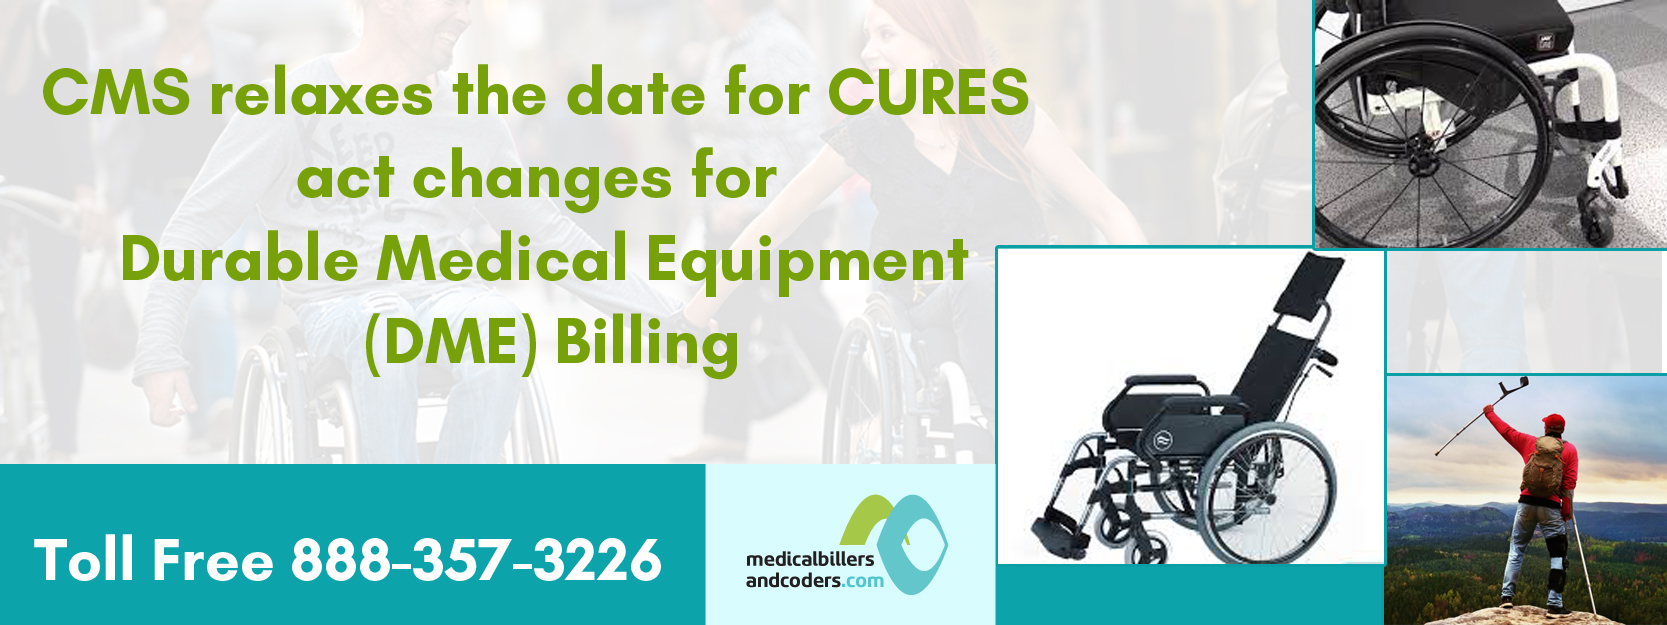 cms-relaxes-the-date-for-cures-act-changes-for-durable-medical-equipment-dme-billing